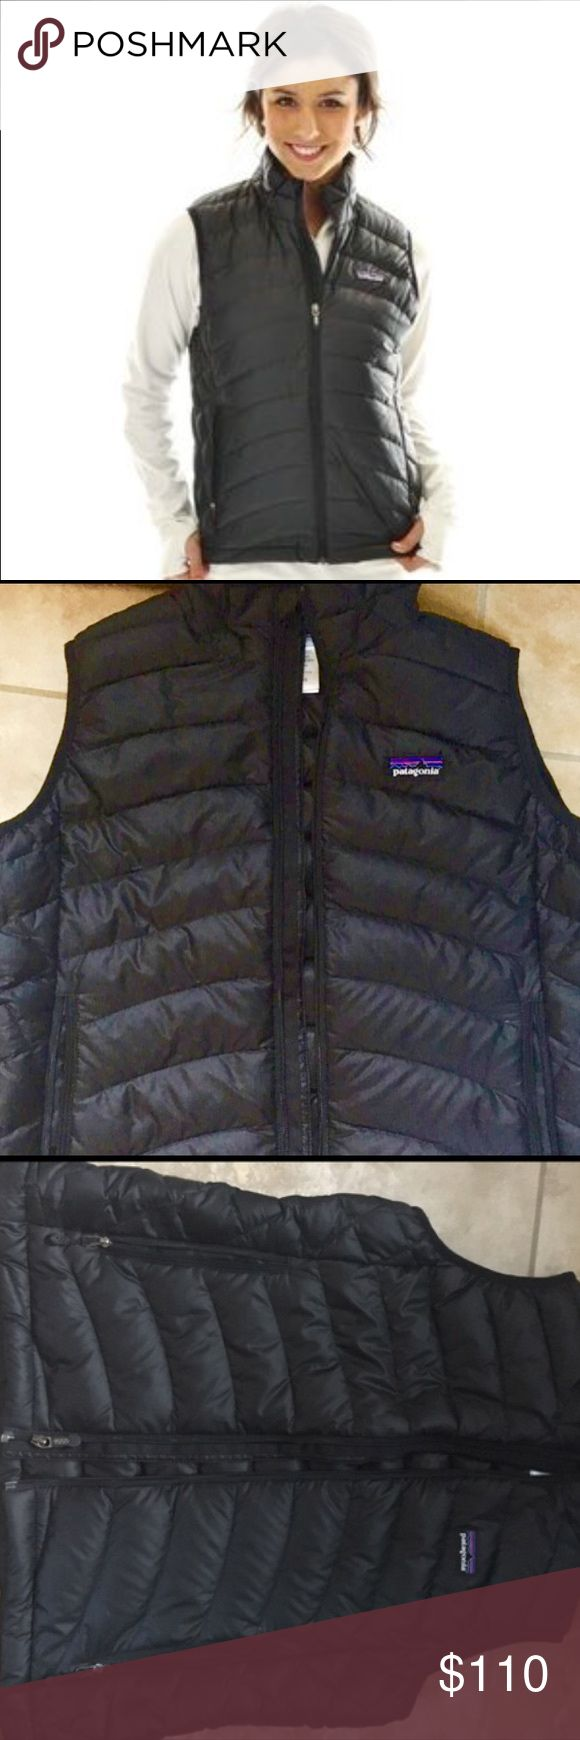 Patagonia Down Sweater Vest Like new! Patagonia Down Sweater Vest - perfect condition! The best is unfortunately too small for me :( I love it! Patagonia Jackets & Coats Vests